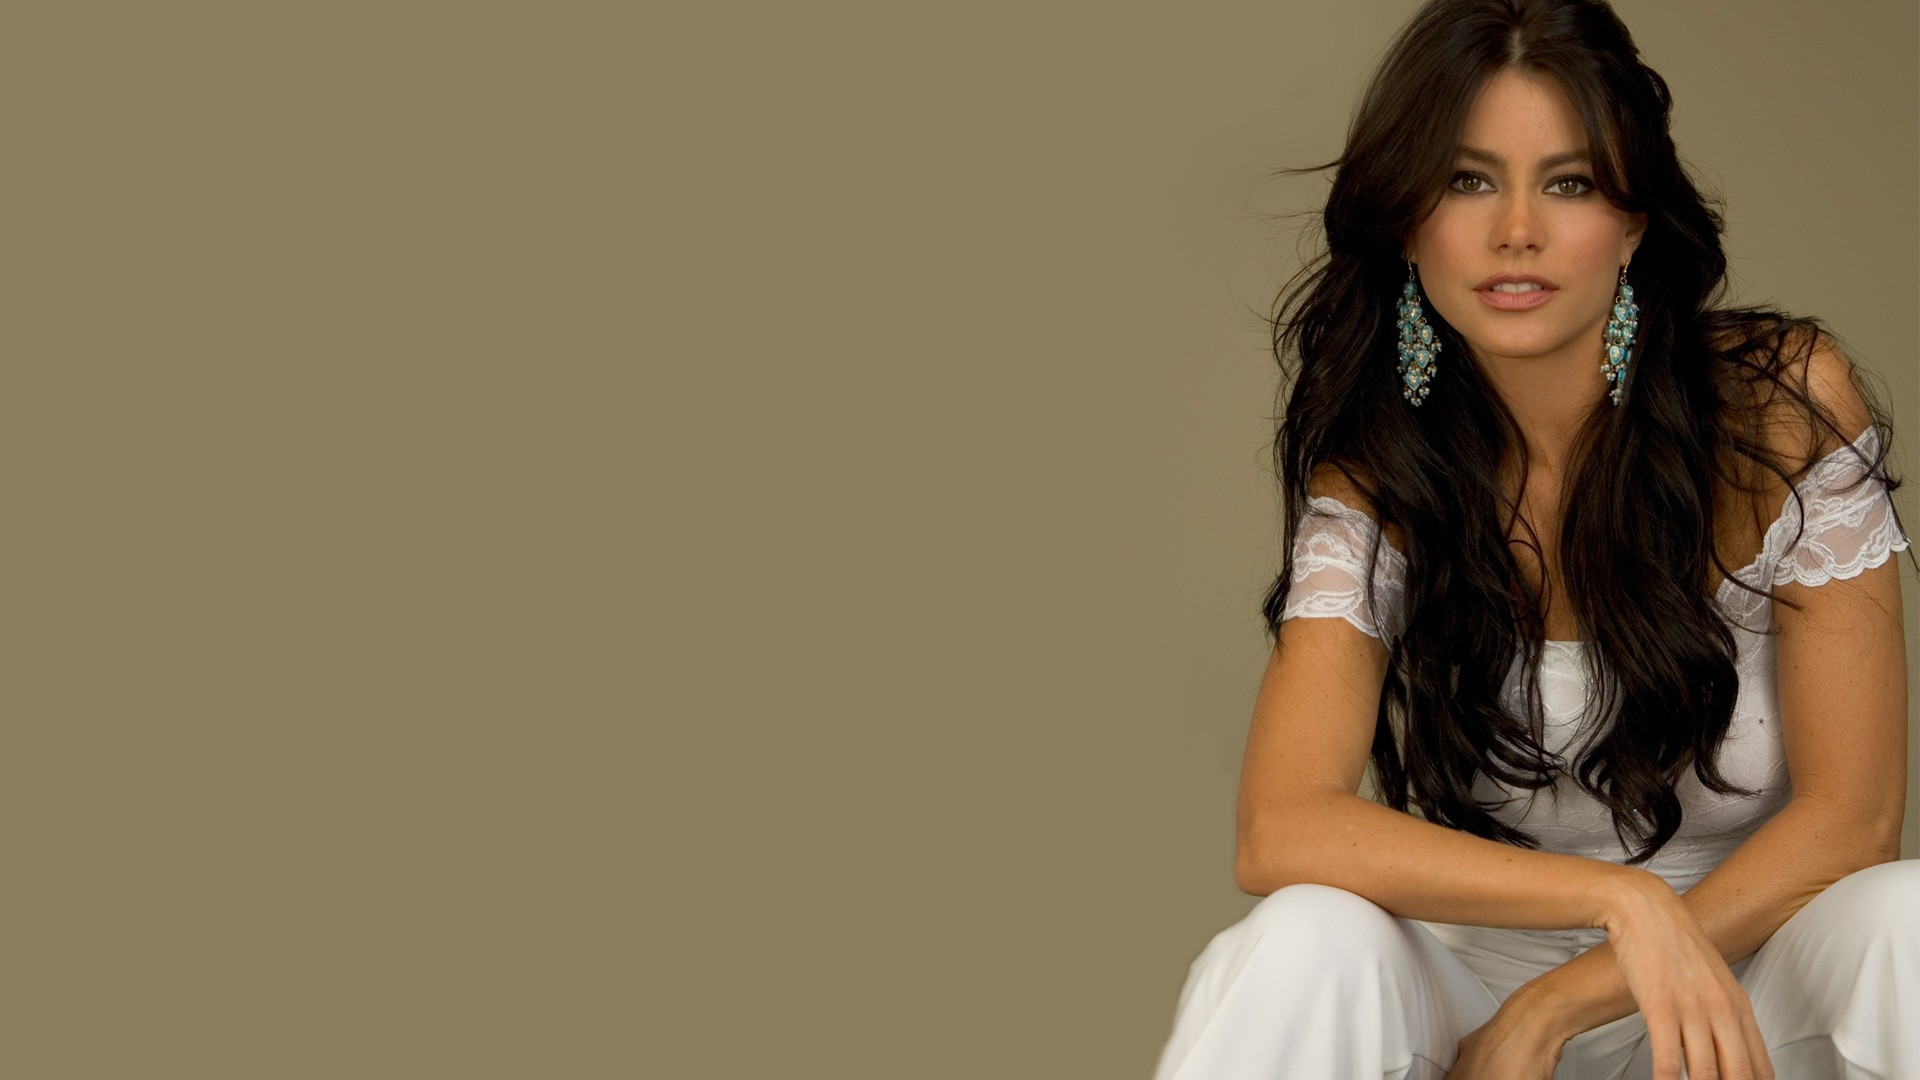 Sofia Vergara Younger Years HD Wallpaper Background Images 1920x1080